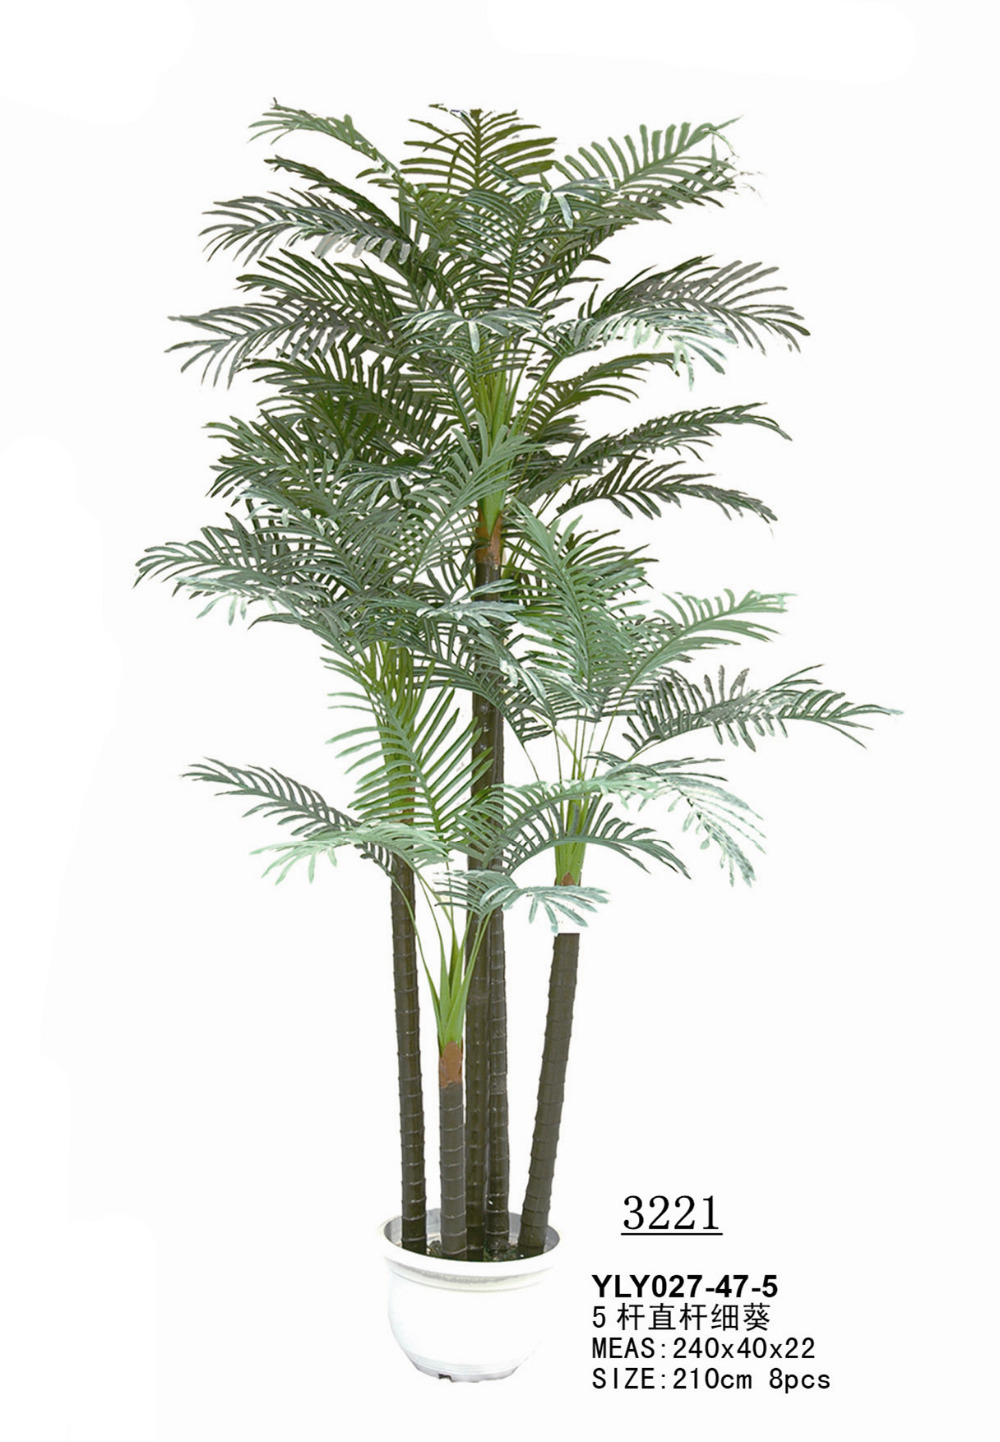 Decorative Indoor Trees Wholesale Artificial Indoor Palm Tree Chrysalidocarpus Lutescens